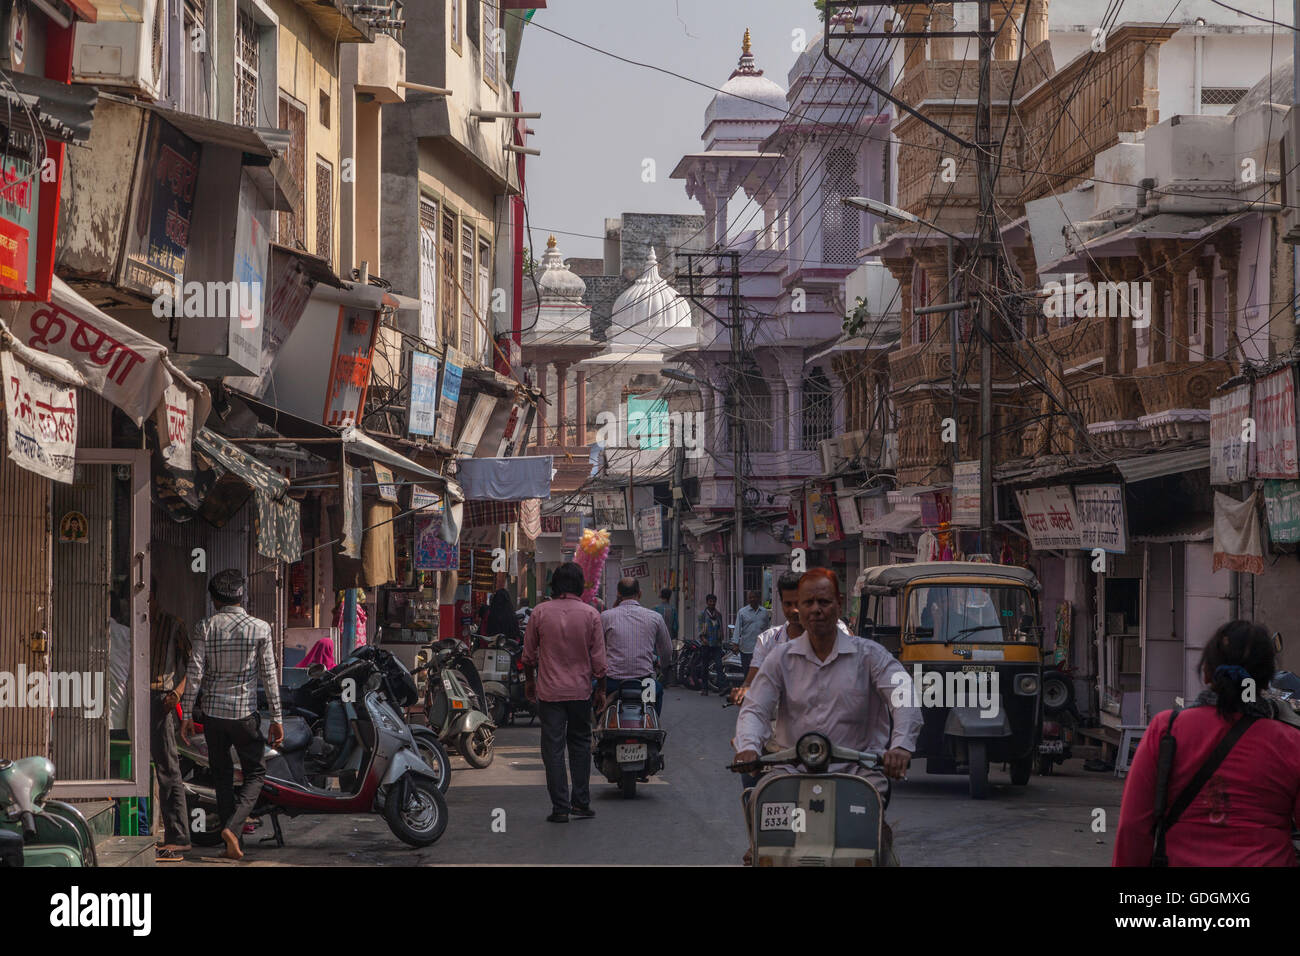 A congested, hectic street outside New Delhi, India - Stock Image